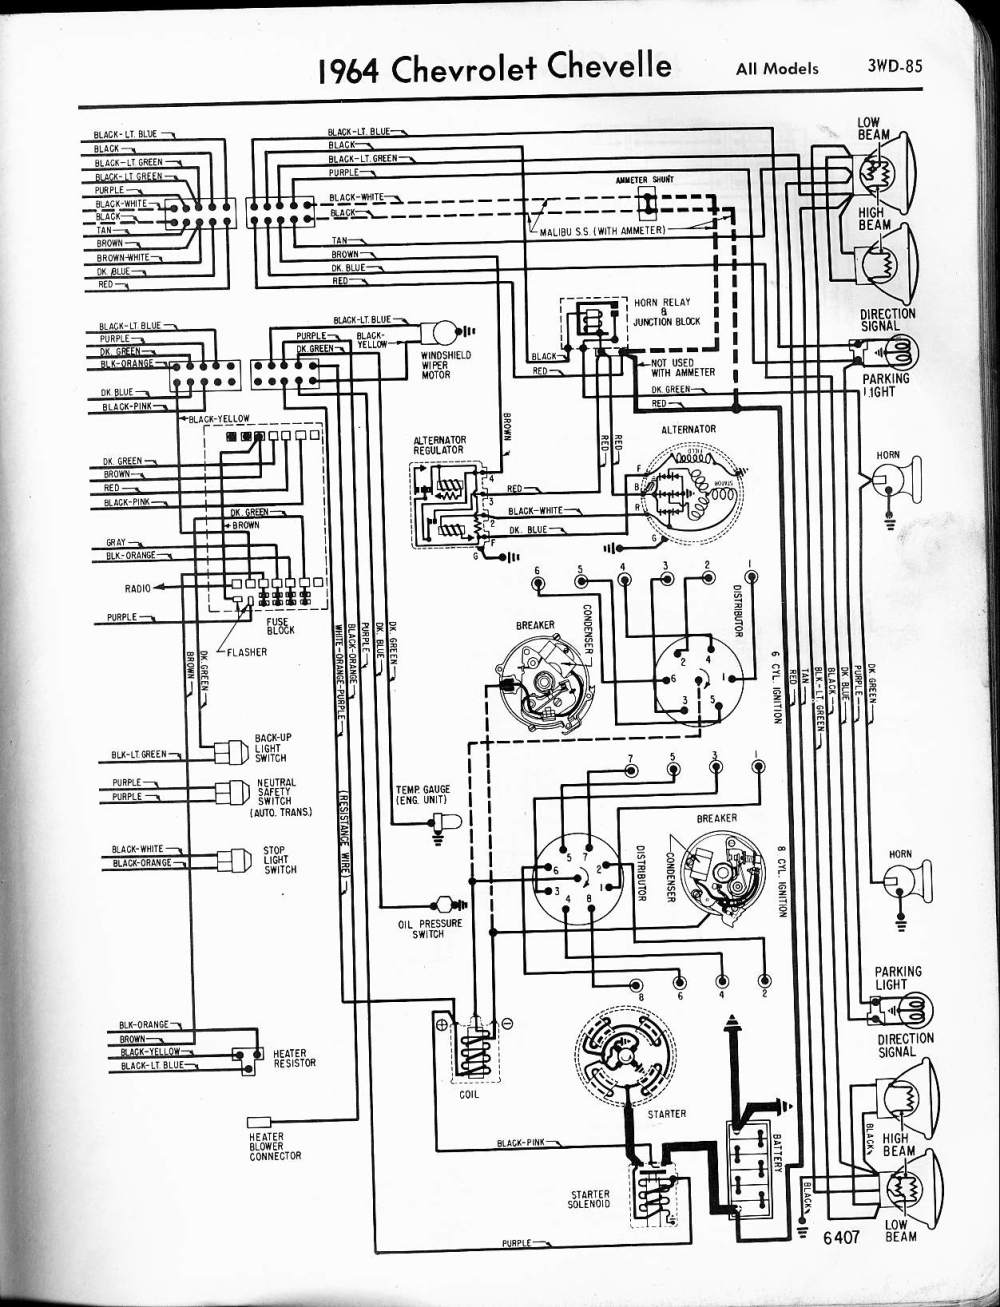 medium resolution of 1968 chevelle wiring harness diagram wiring diagram todaysdownloadable 64 chevelle wiring schematic wiring diagrams 1967 chevelle